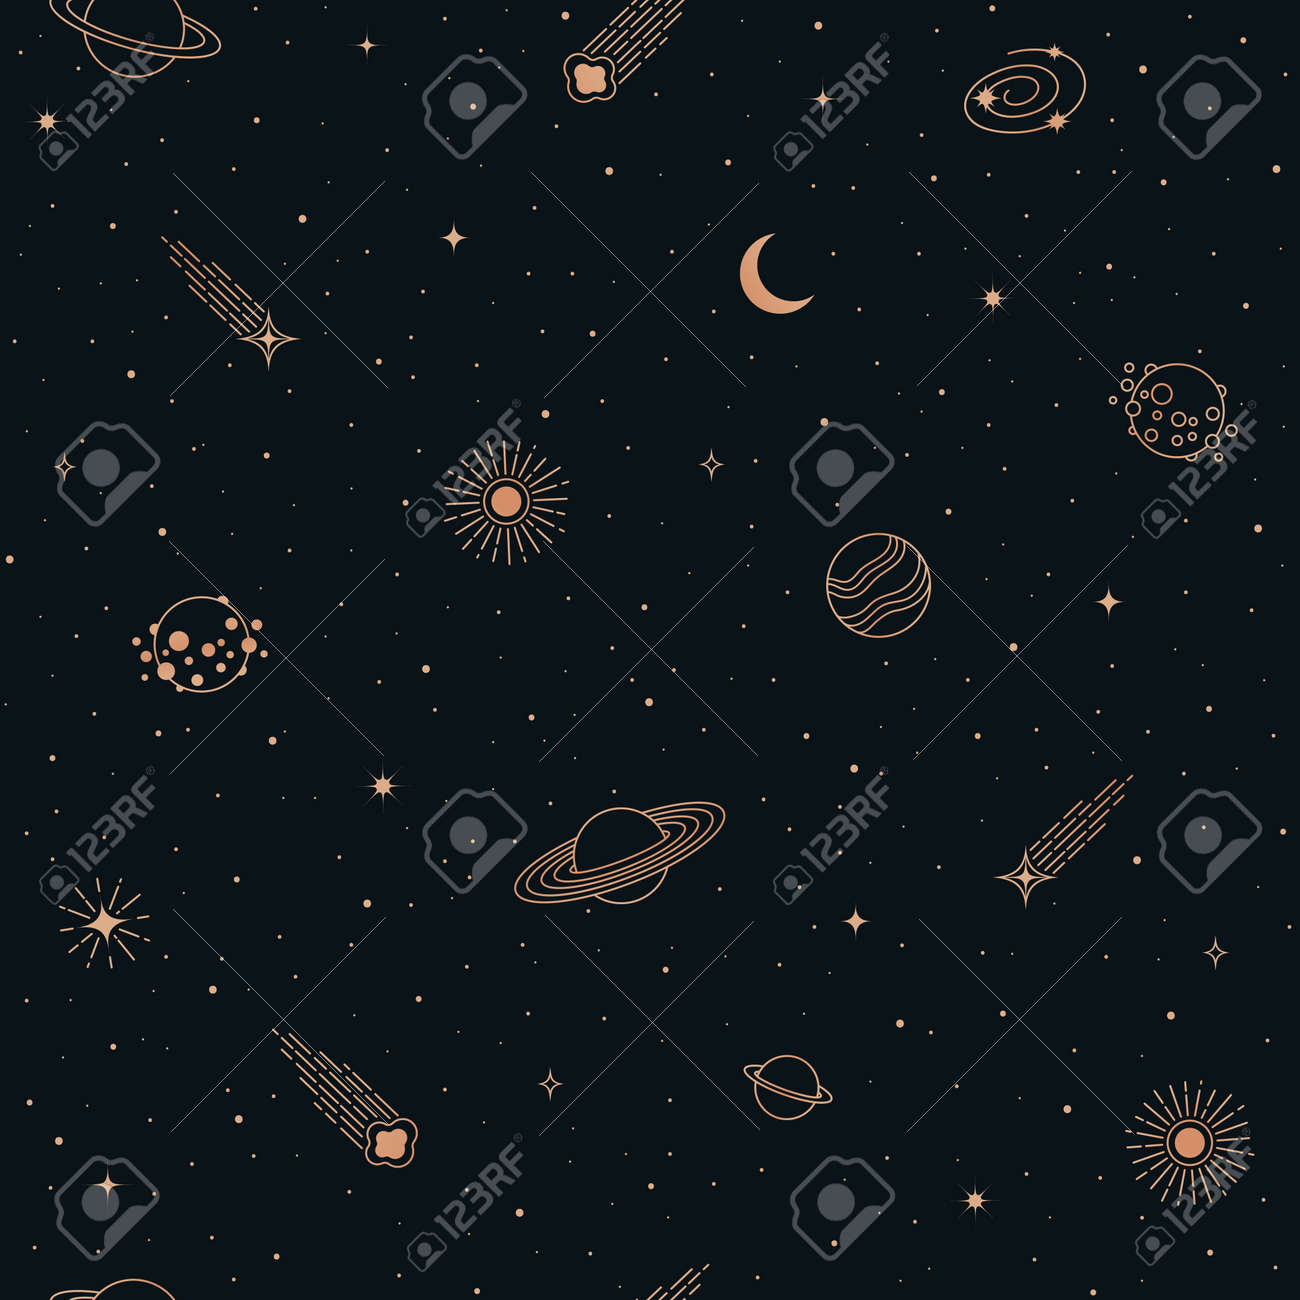 Hand drawn vector doodle seamless pattern of Space symbols and objects. Cartoon sketch background for textiles, banner, wrapping paper and other designs. - 168597232